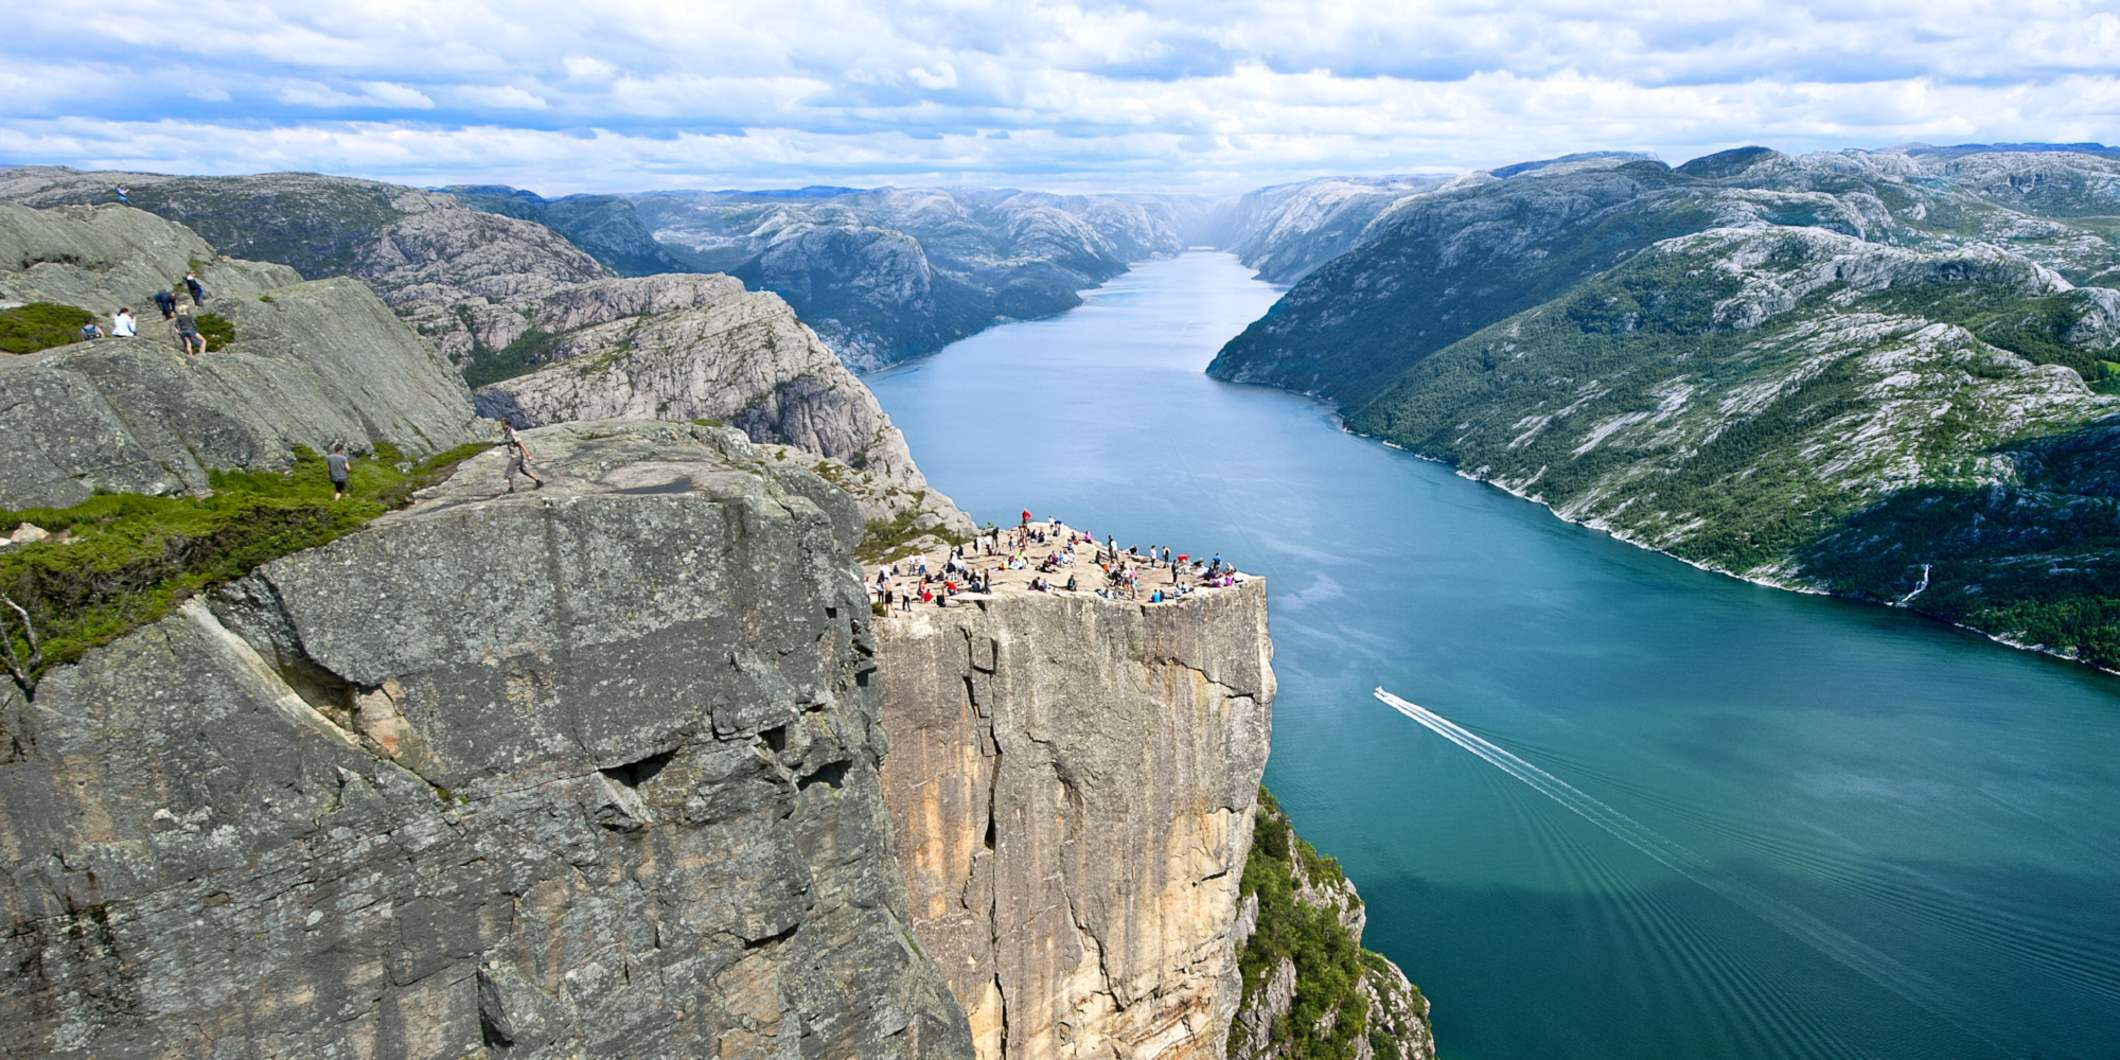 People enjoying the view of Lysefjorden from Pulpit Rock